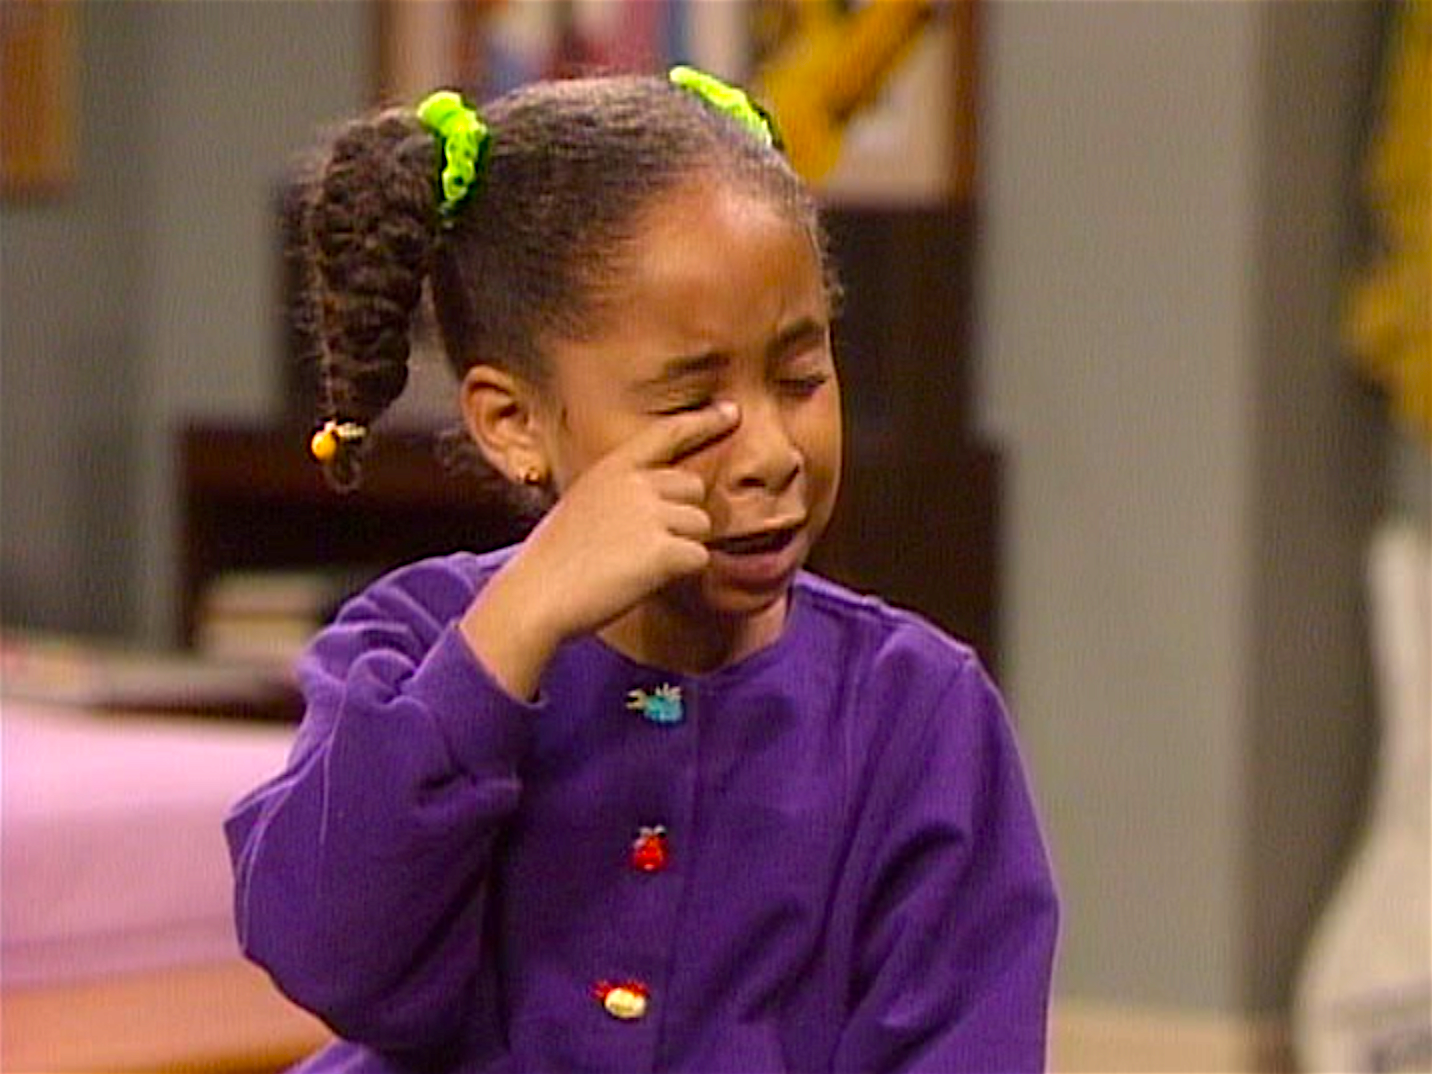 3 10 Things You Might Not Have Known About The Cosby Show